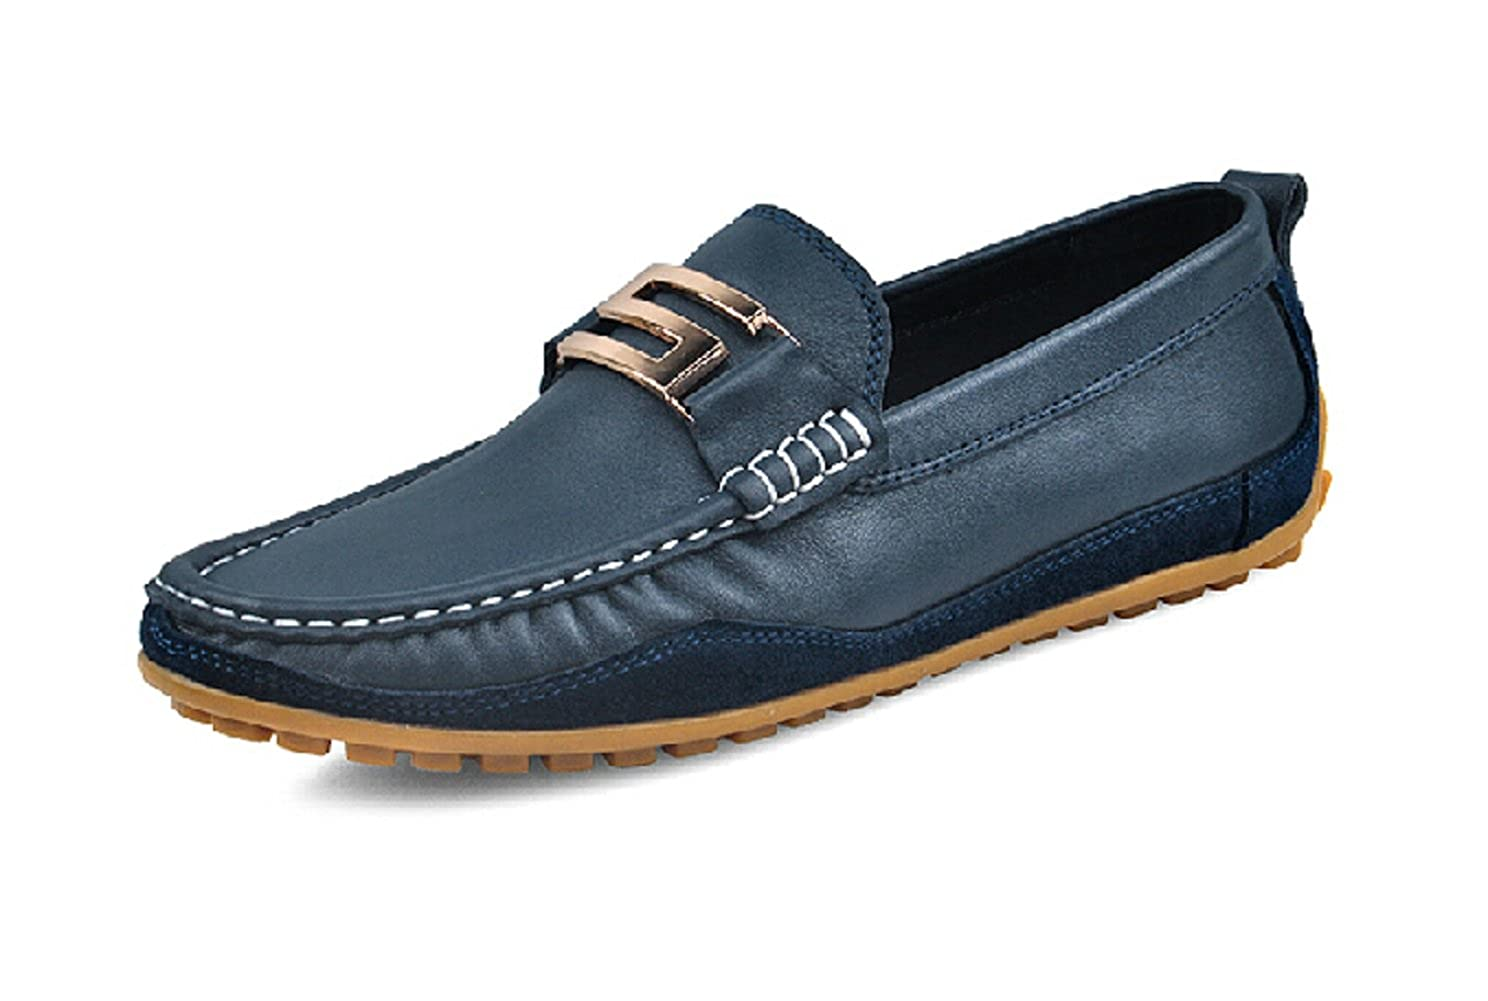 TM Mens Real Leather Buckle Moccasin Comfort Slip-On Driving Shoes Loafers